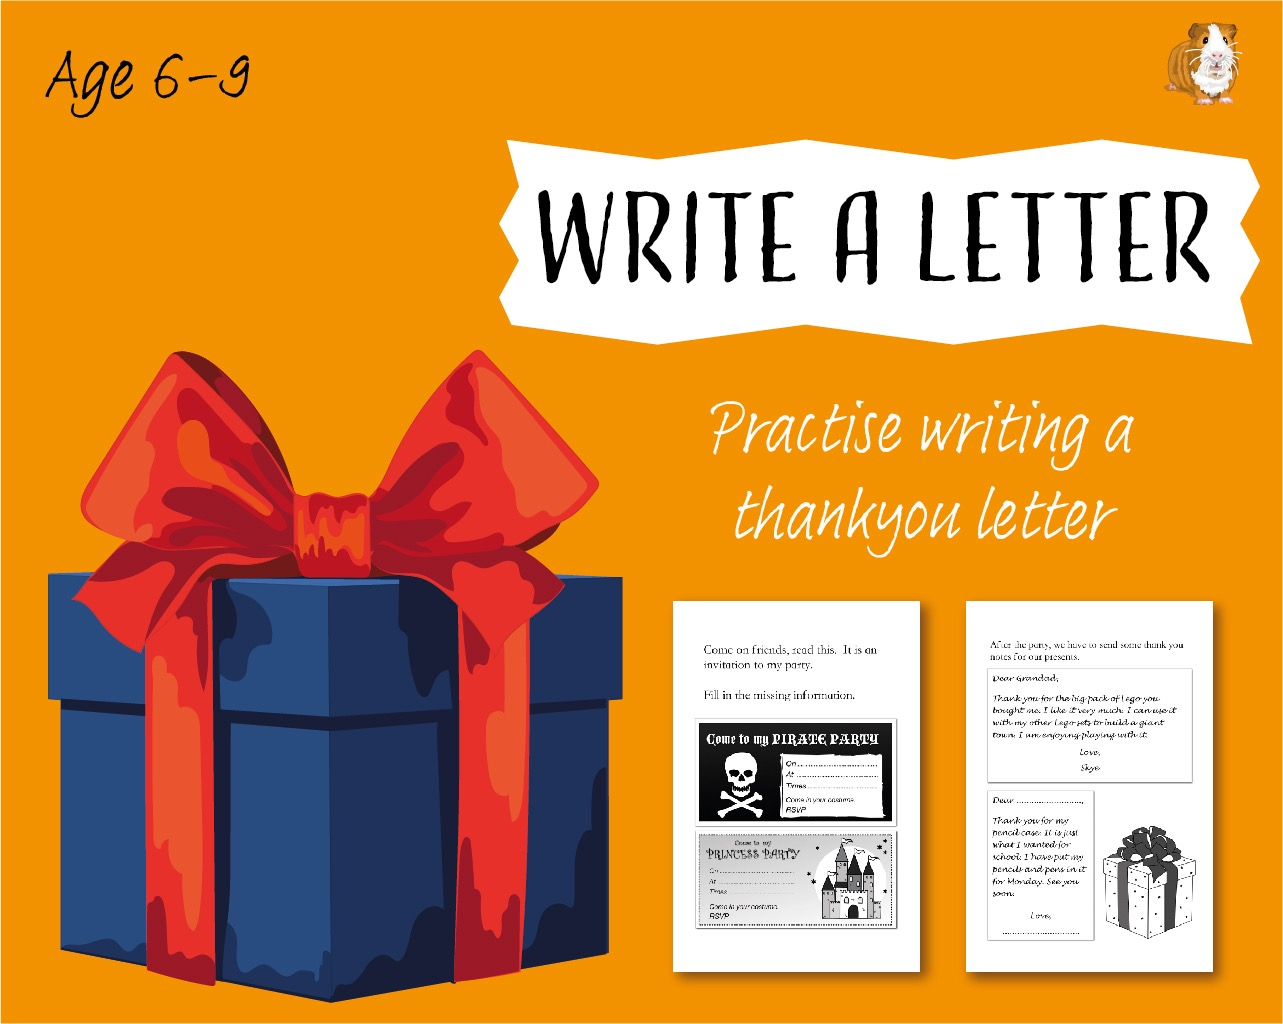 Write A Letter: Practise Writing A Thankyou Letter (6-9 years)